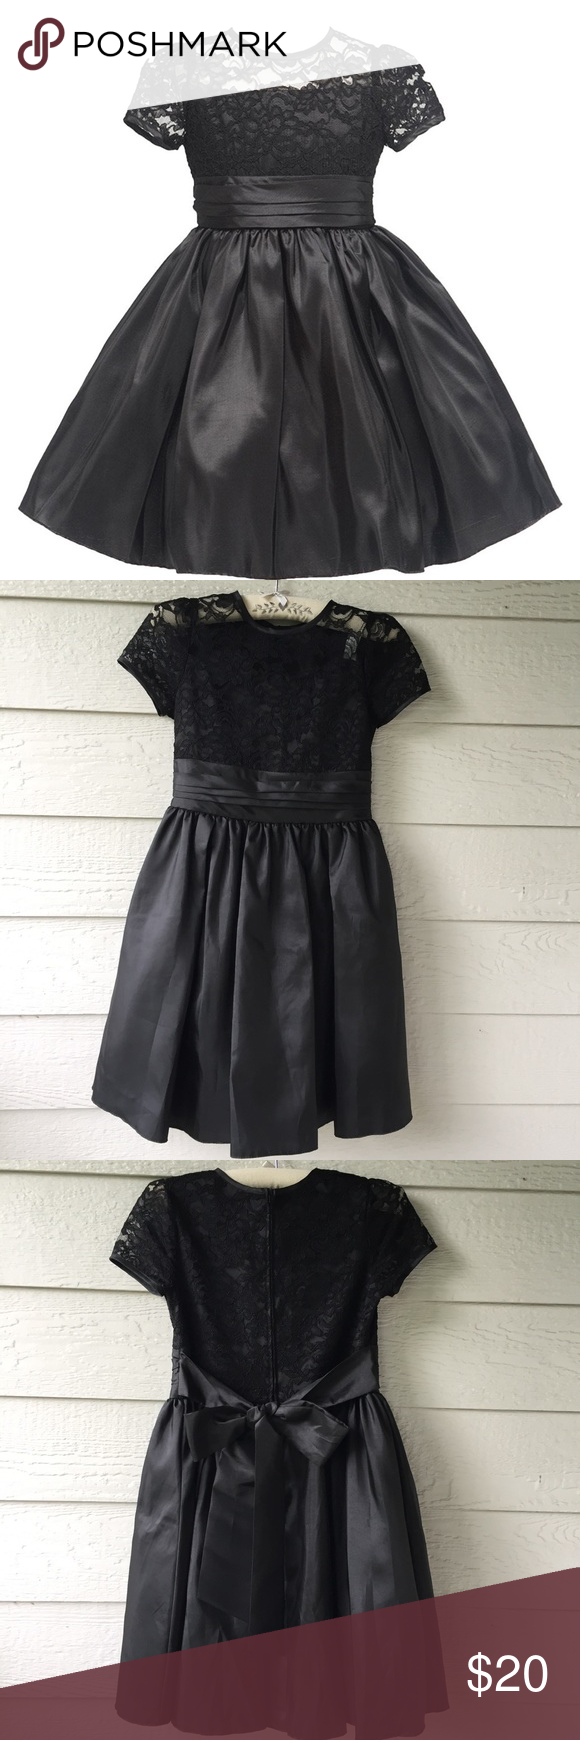 9e9a6f915 Julia Lee Girls Lace Fit and Flare Dress